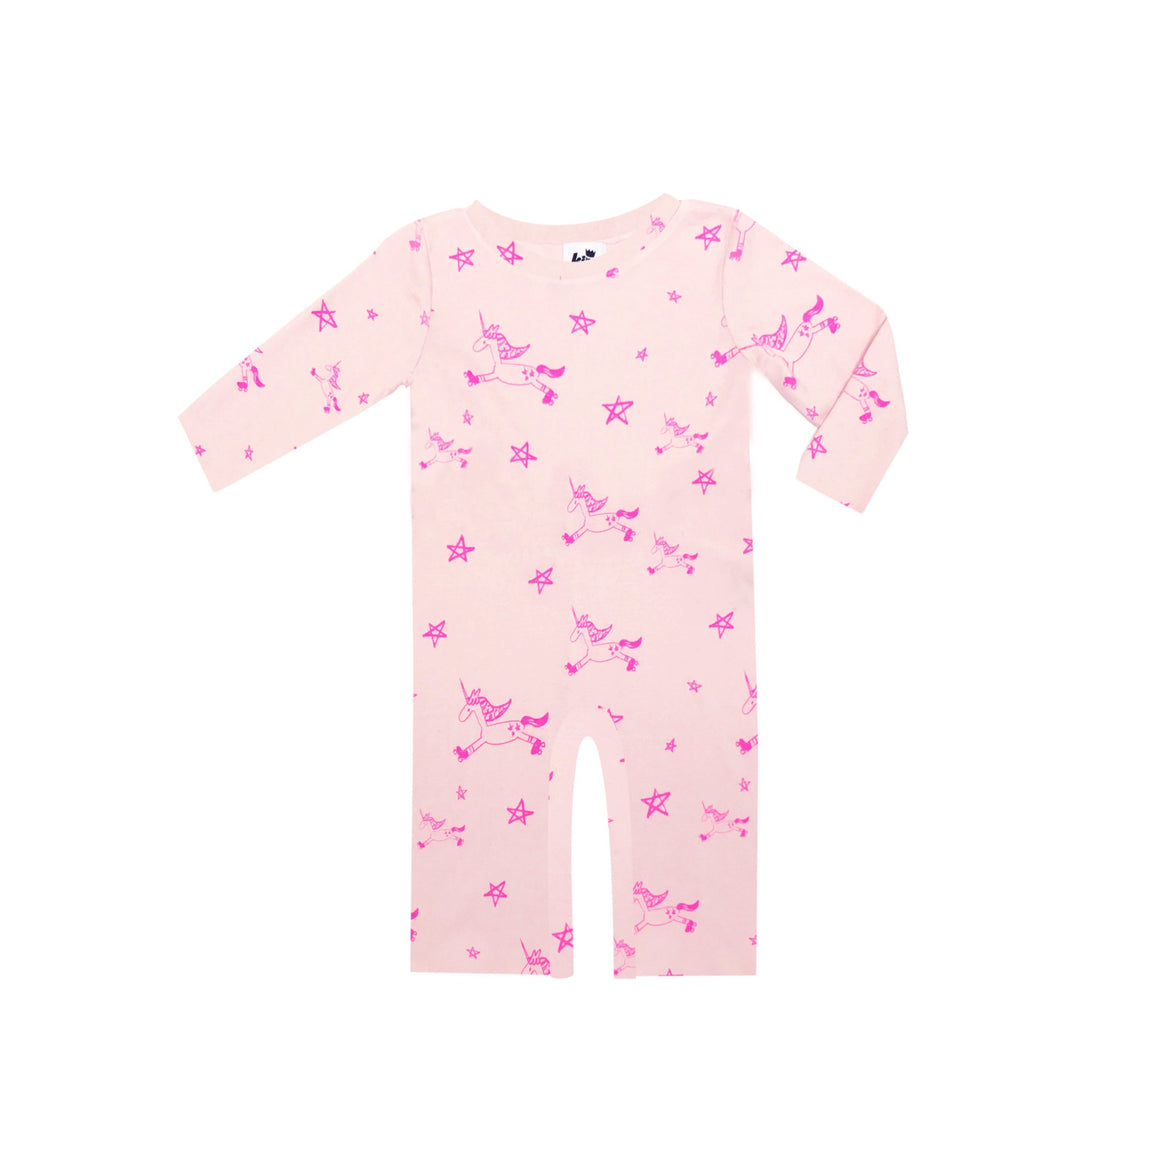 Unicorn Print Romper, L/S, Light Pink